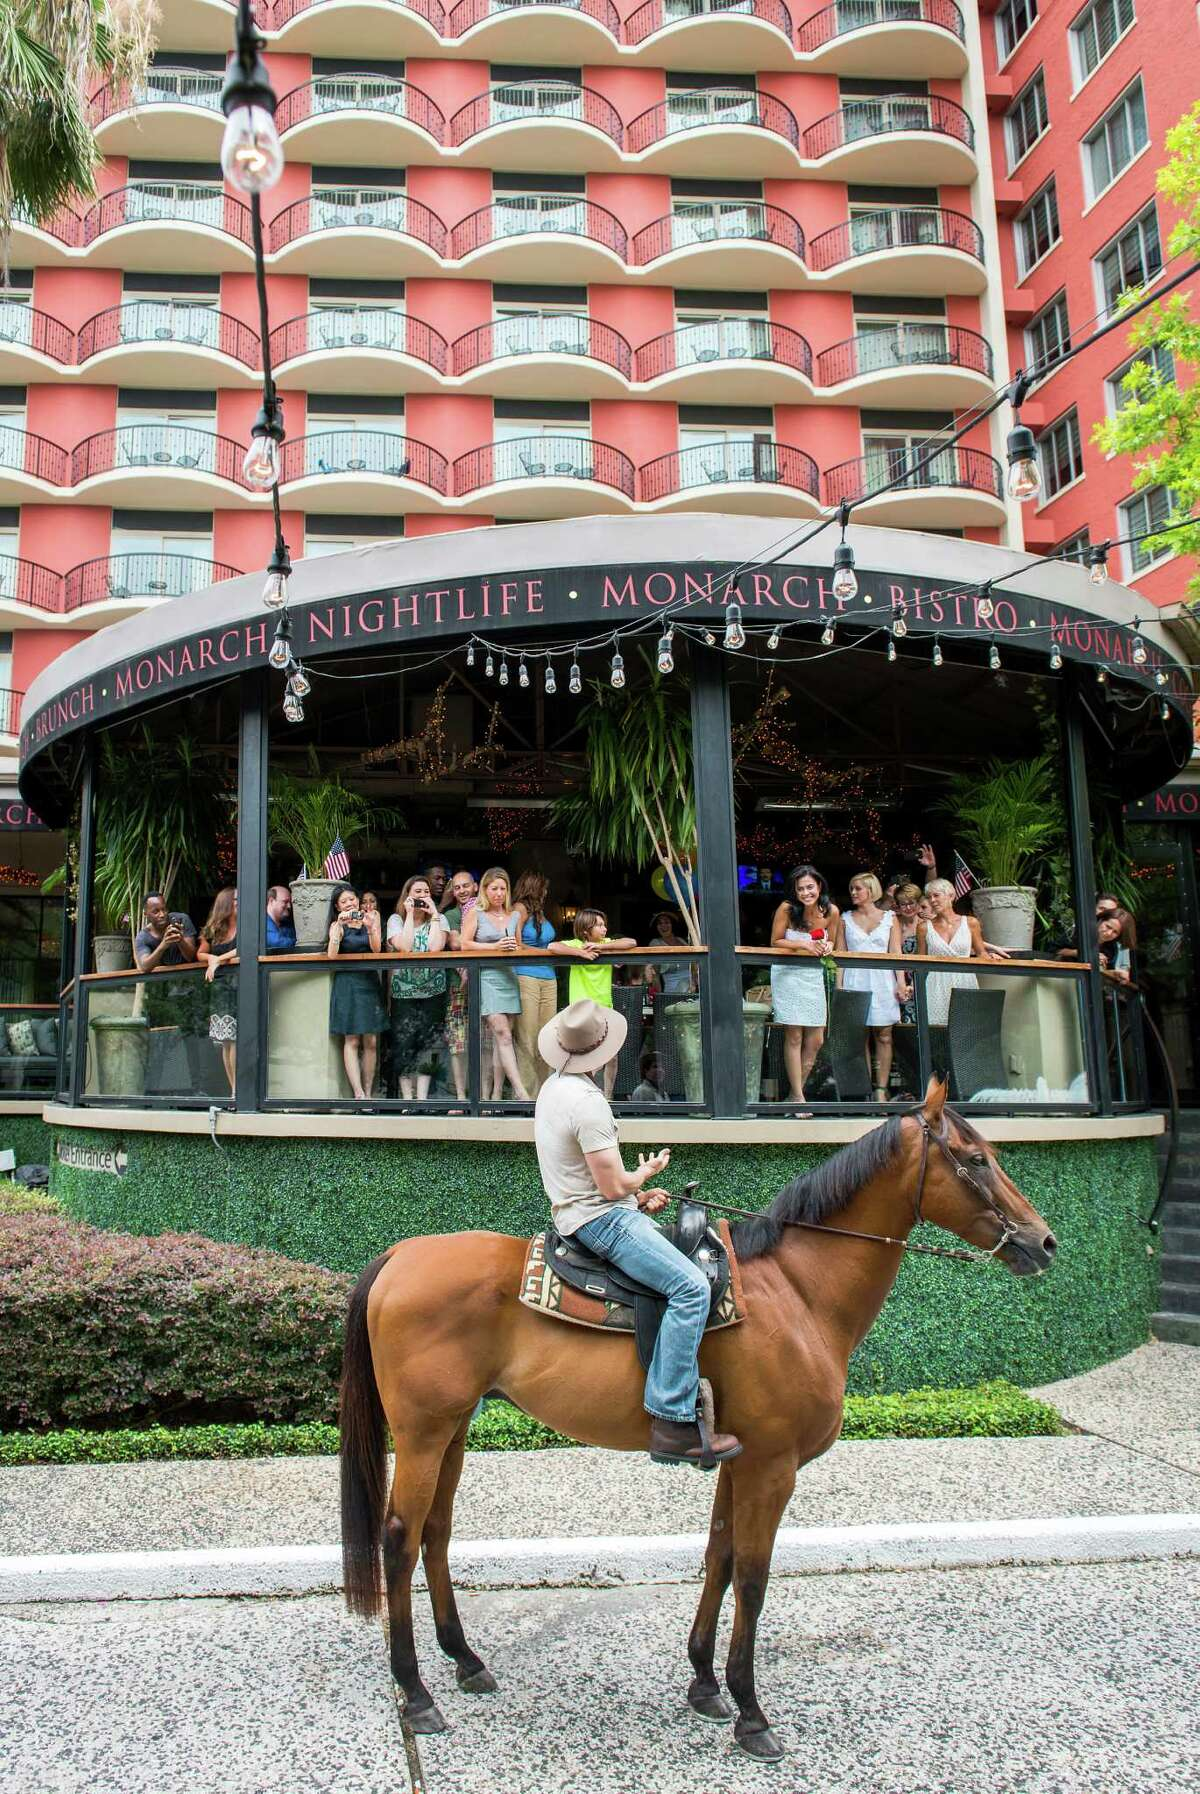 Alan Wakim interrupts his own birthday party at the Hotal ZaZa's Monarch restaurant to ride up on horseback and propose marriage to his girlfriend Jennifer Ann Molleda, seen on the balcony wearing white and holding a rose. Wakim excused himself from the party to return atop the horse named